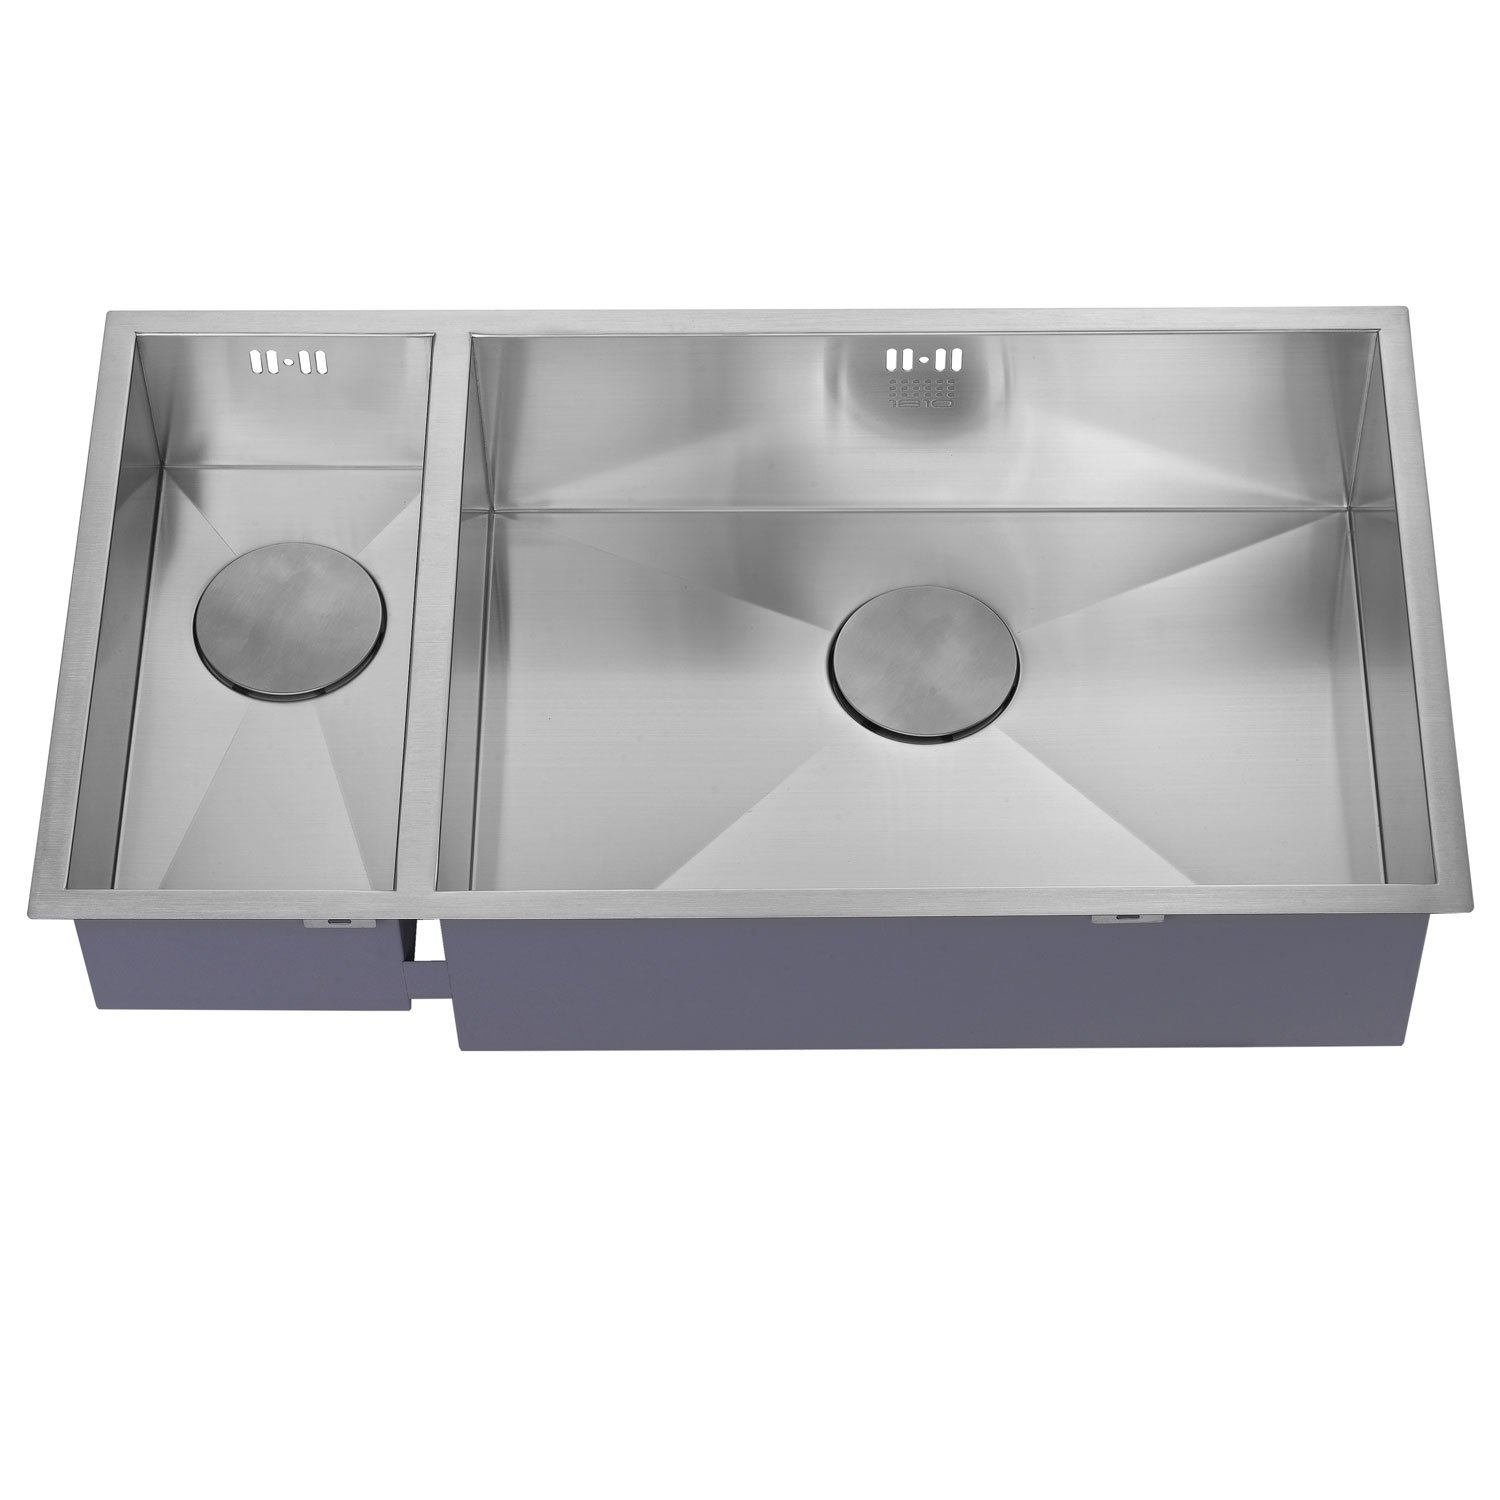 The 1810 Company Zenduo 180/550U 1.5 Bowl Kitchen Sink - Right Handed-1